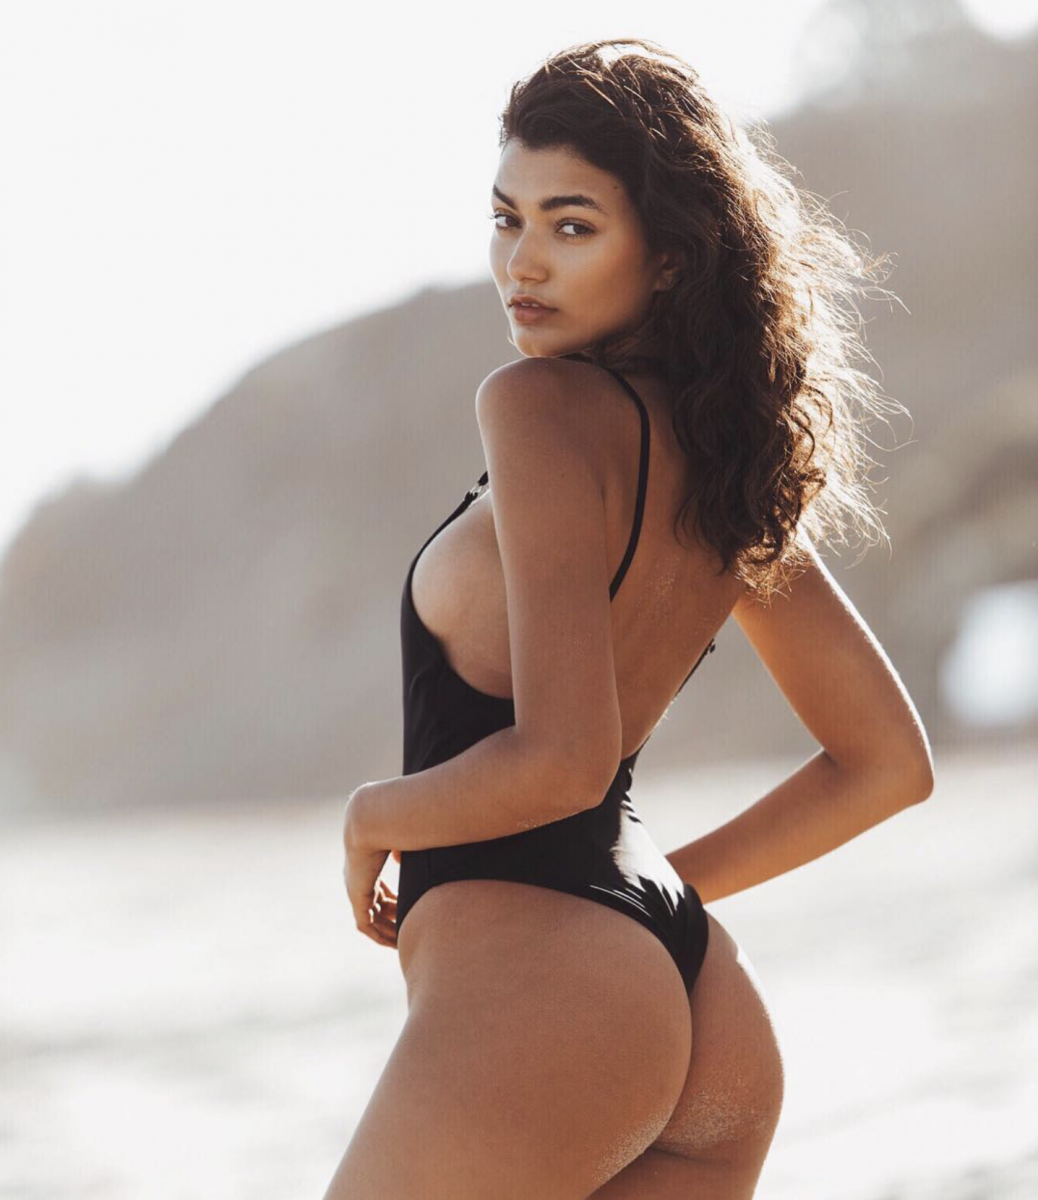 Balistarz-model-Sasha-Pereira-looks-hot-wearing-black-bikini-follow-me